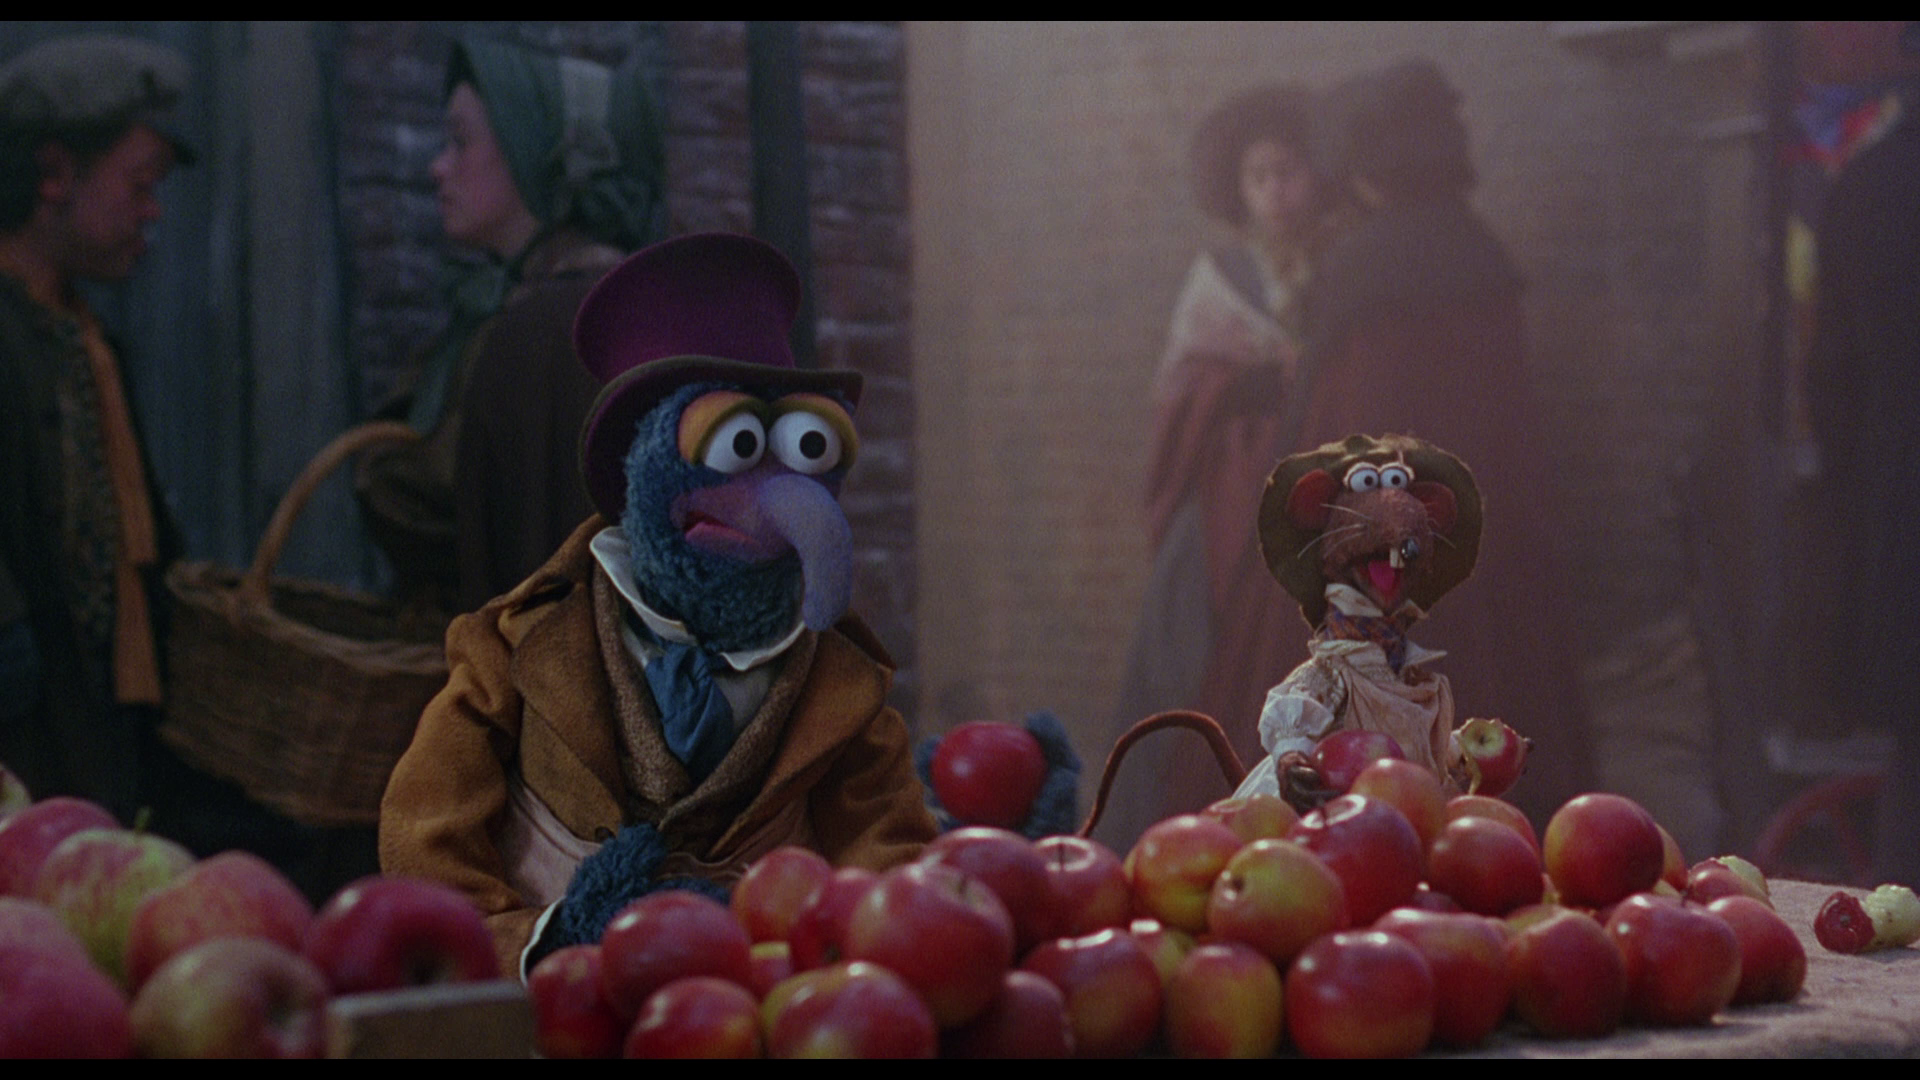 The Muppet Christmas Carol (Blu-ray) : DVD Talk Review of the Blu-ray